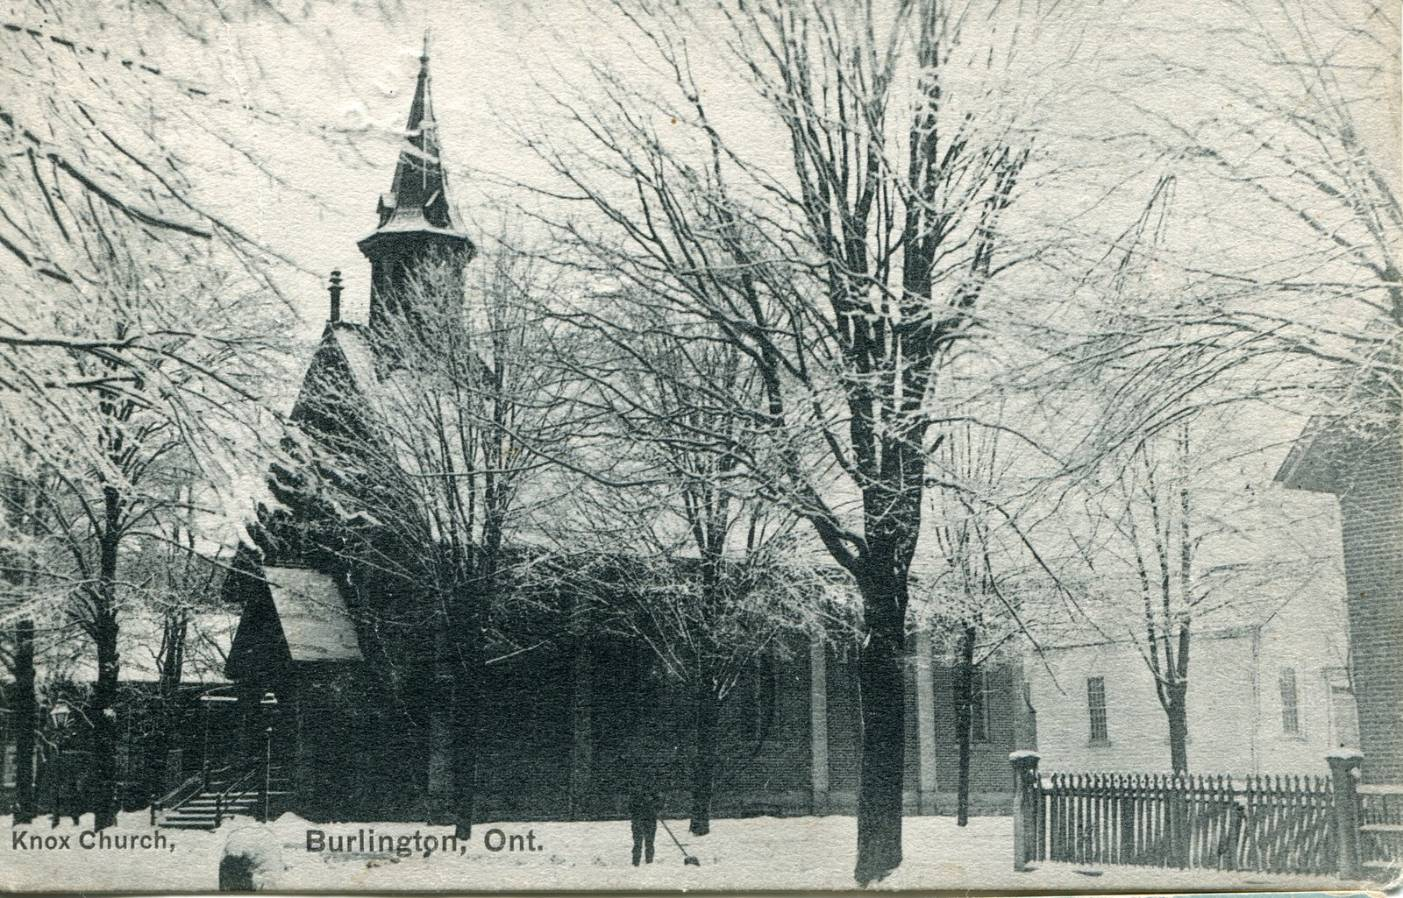 Knox Church, winter, circa 1906